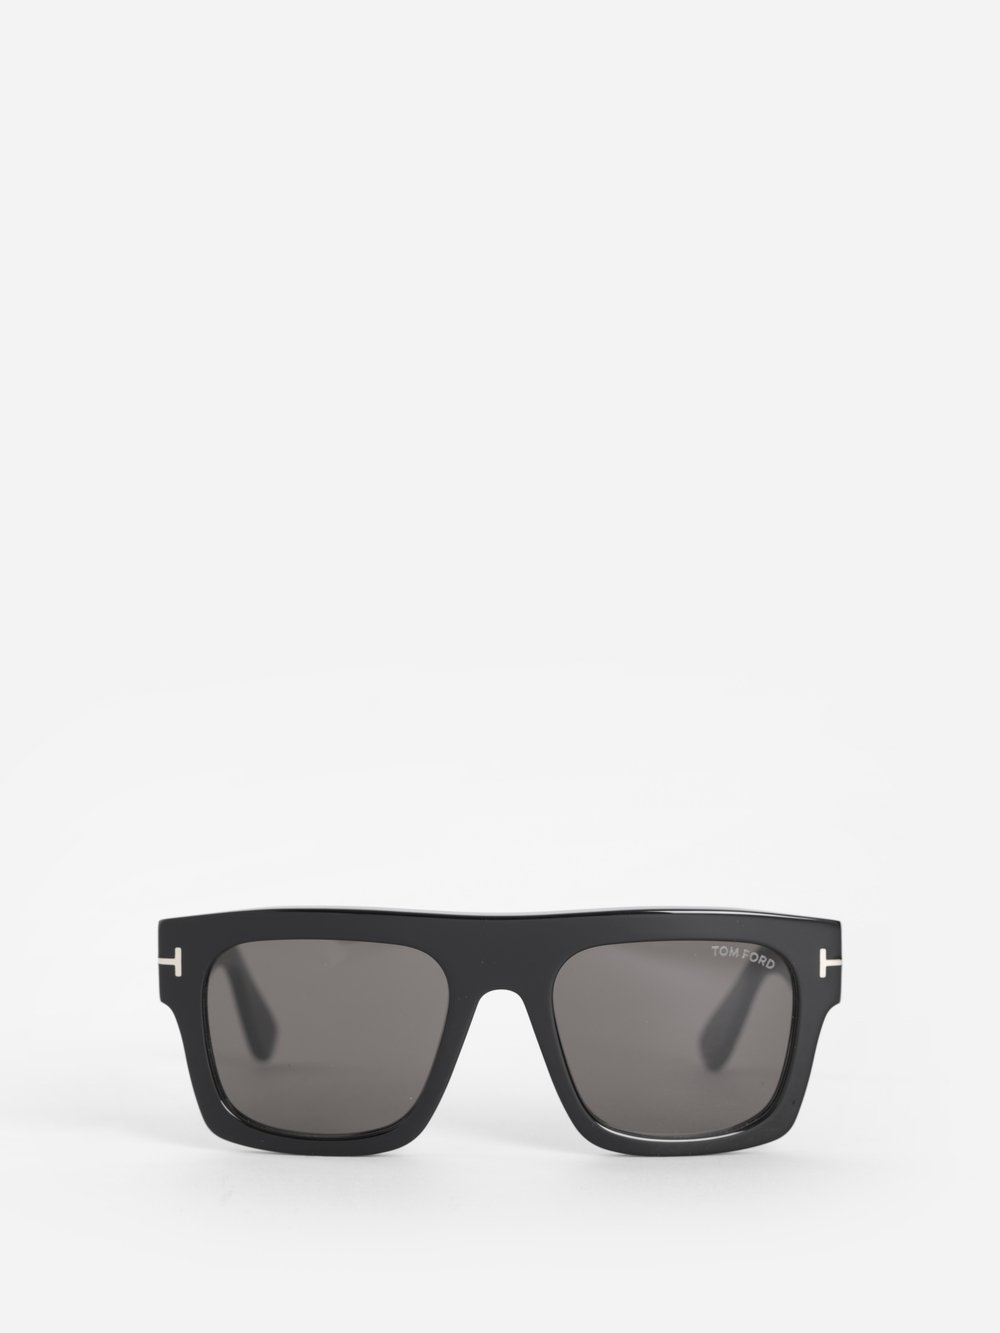 9a2094f2b7 Tom Ford - Eyewear - Antonioli.eu